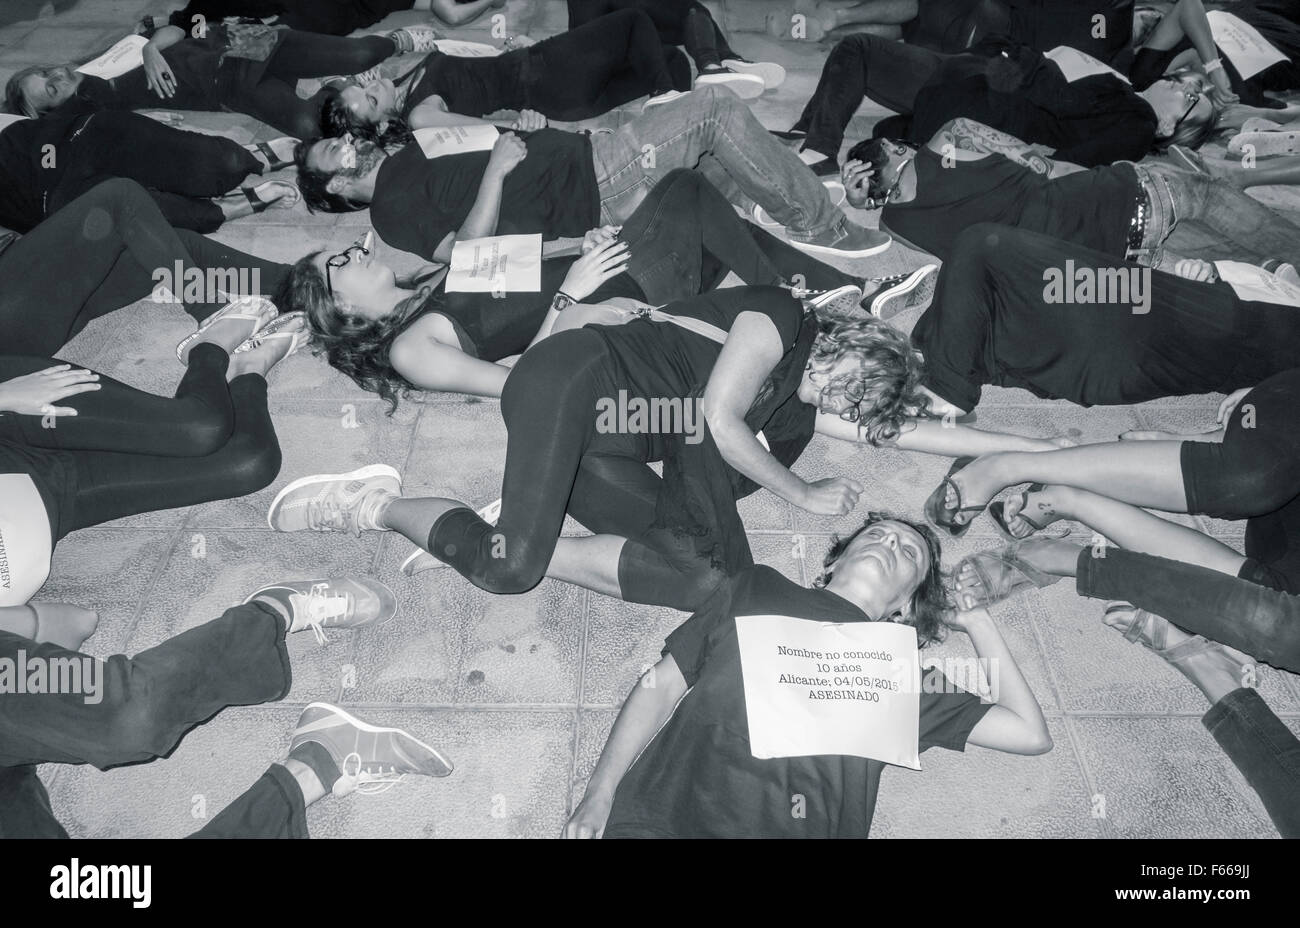 Thousands of Spanish women march against domestic violence. Stock Photo